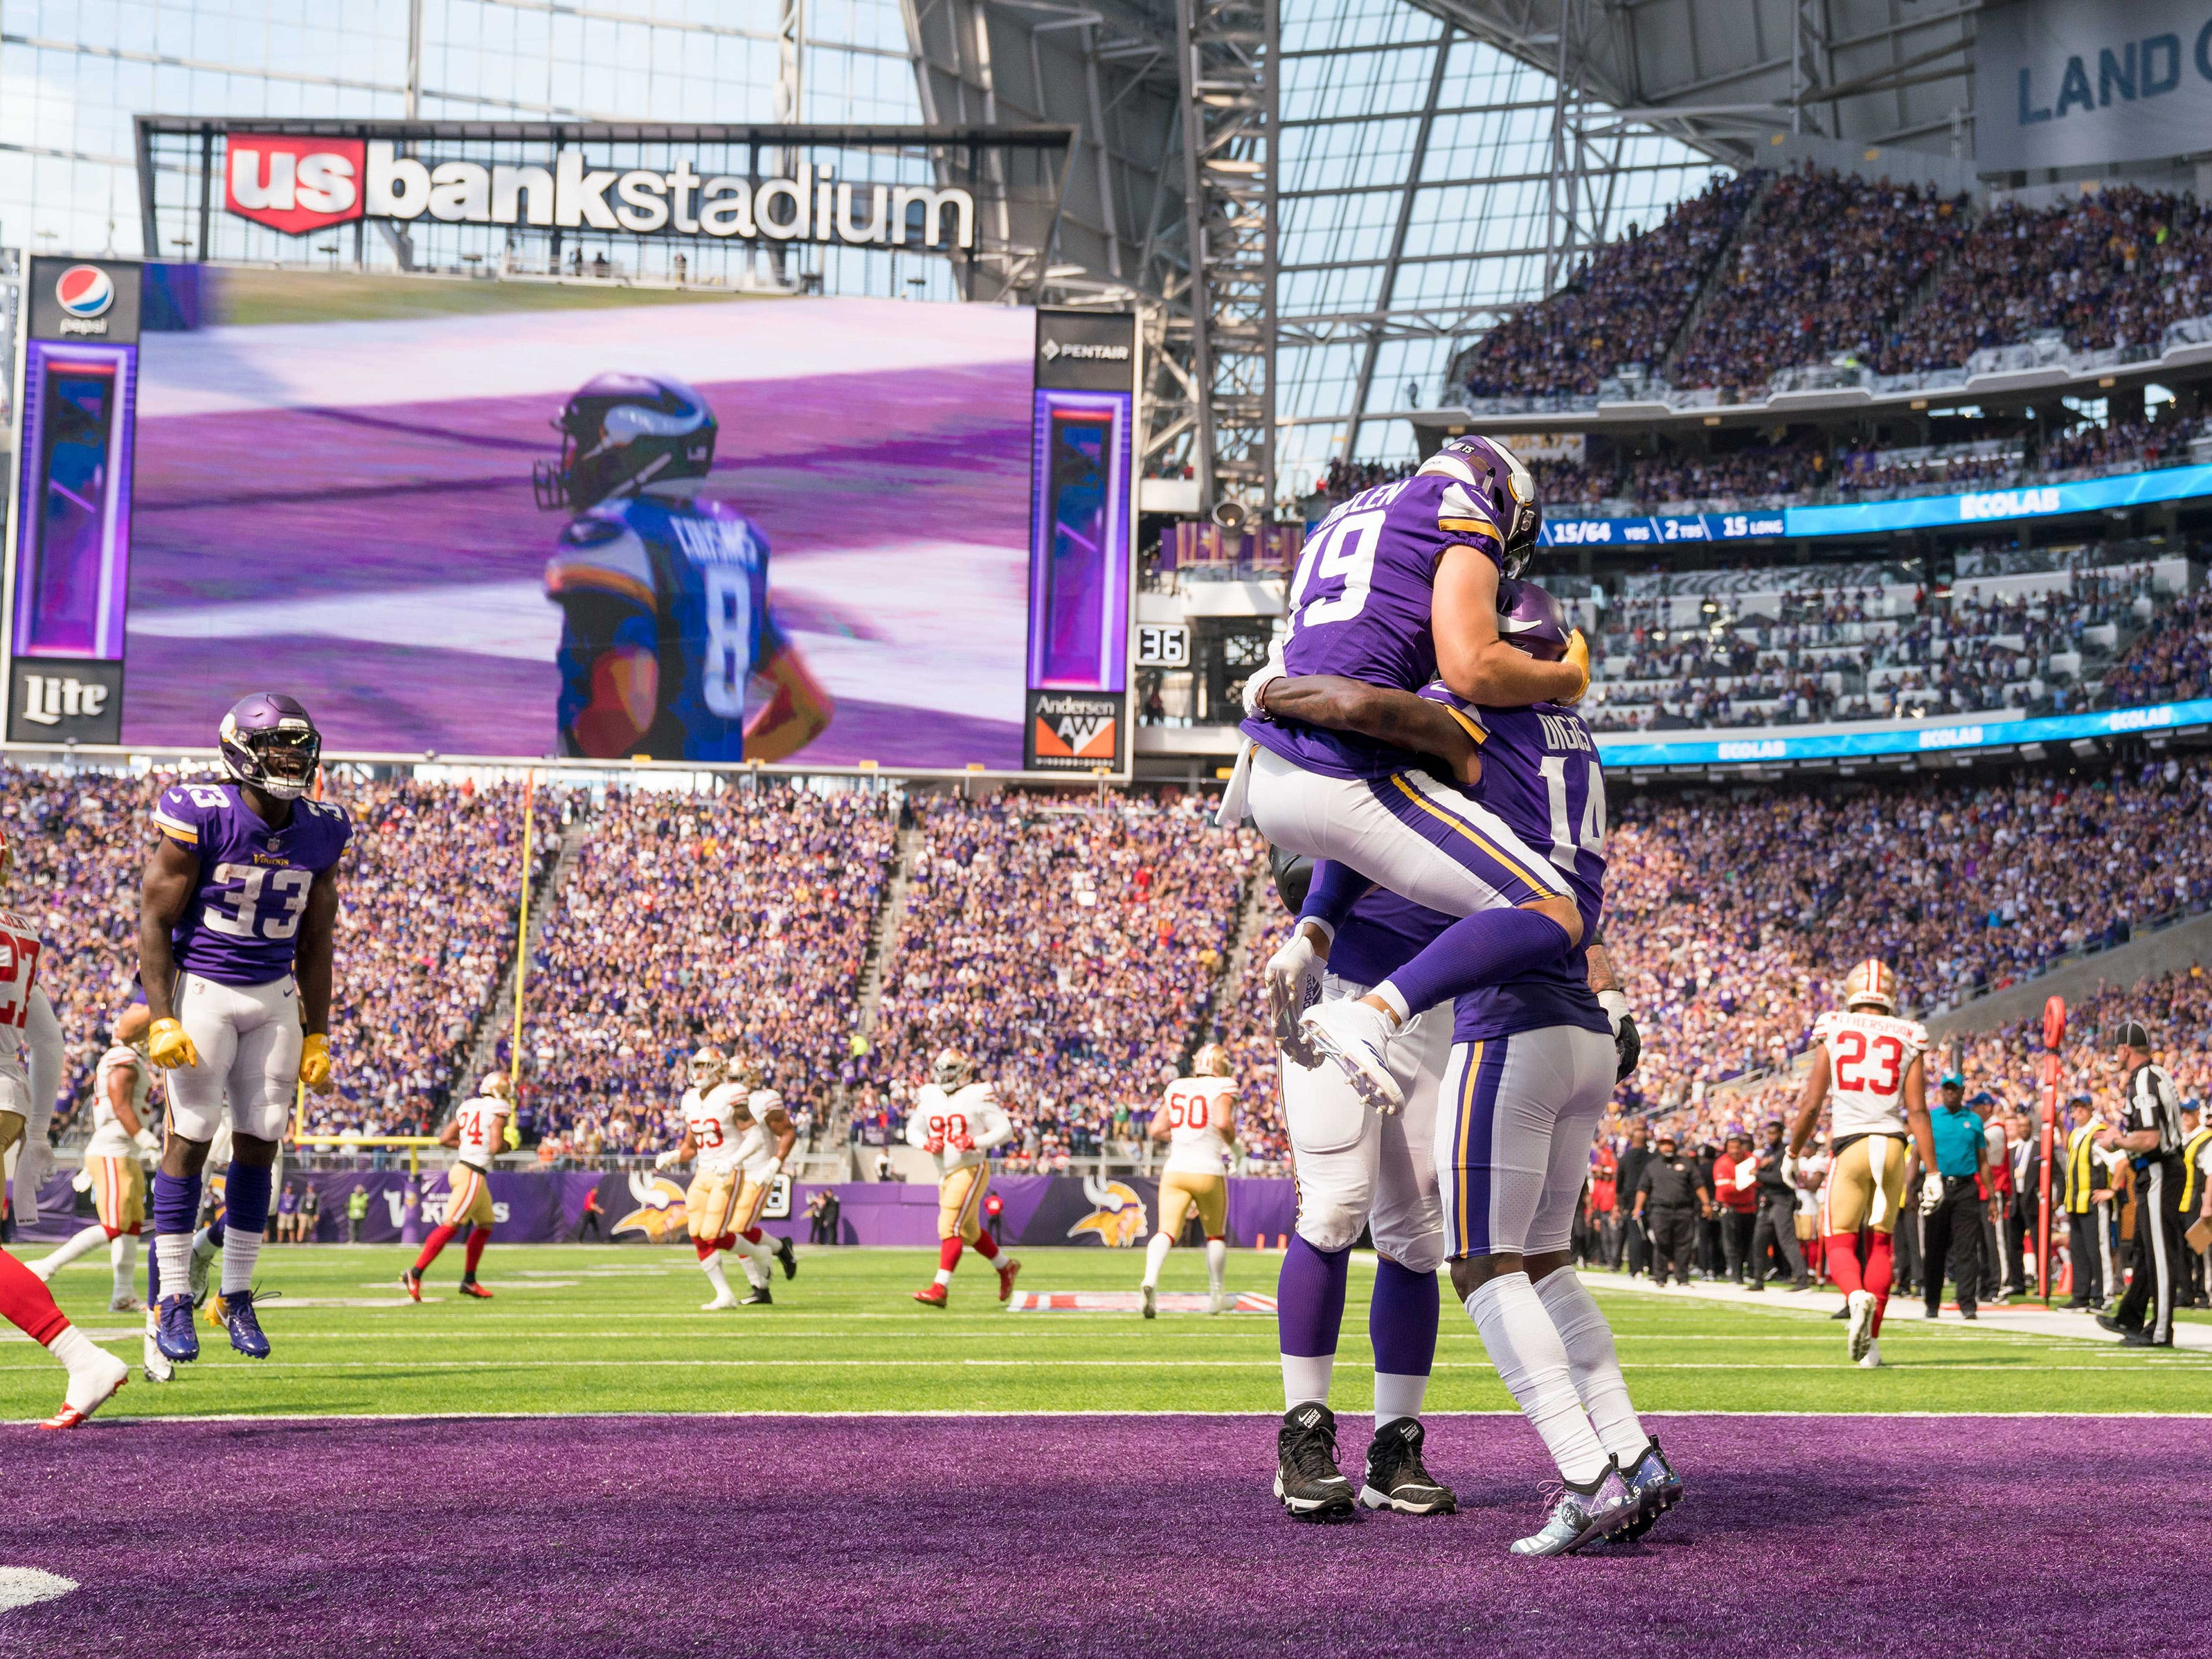 Minnesota Vikings wide receiver Adam Thielen (19) celebrates with teammate Stefon Diggs after his touchdown in the second quarter against San Francisco 49ers at U.S. Bank Stadium.